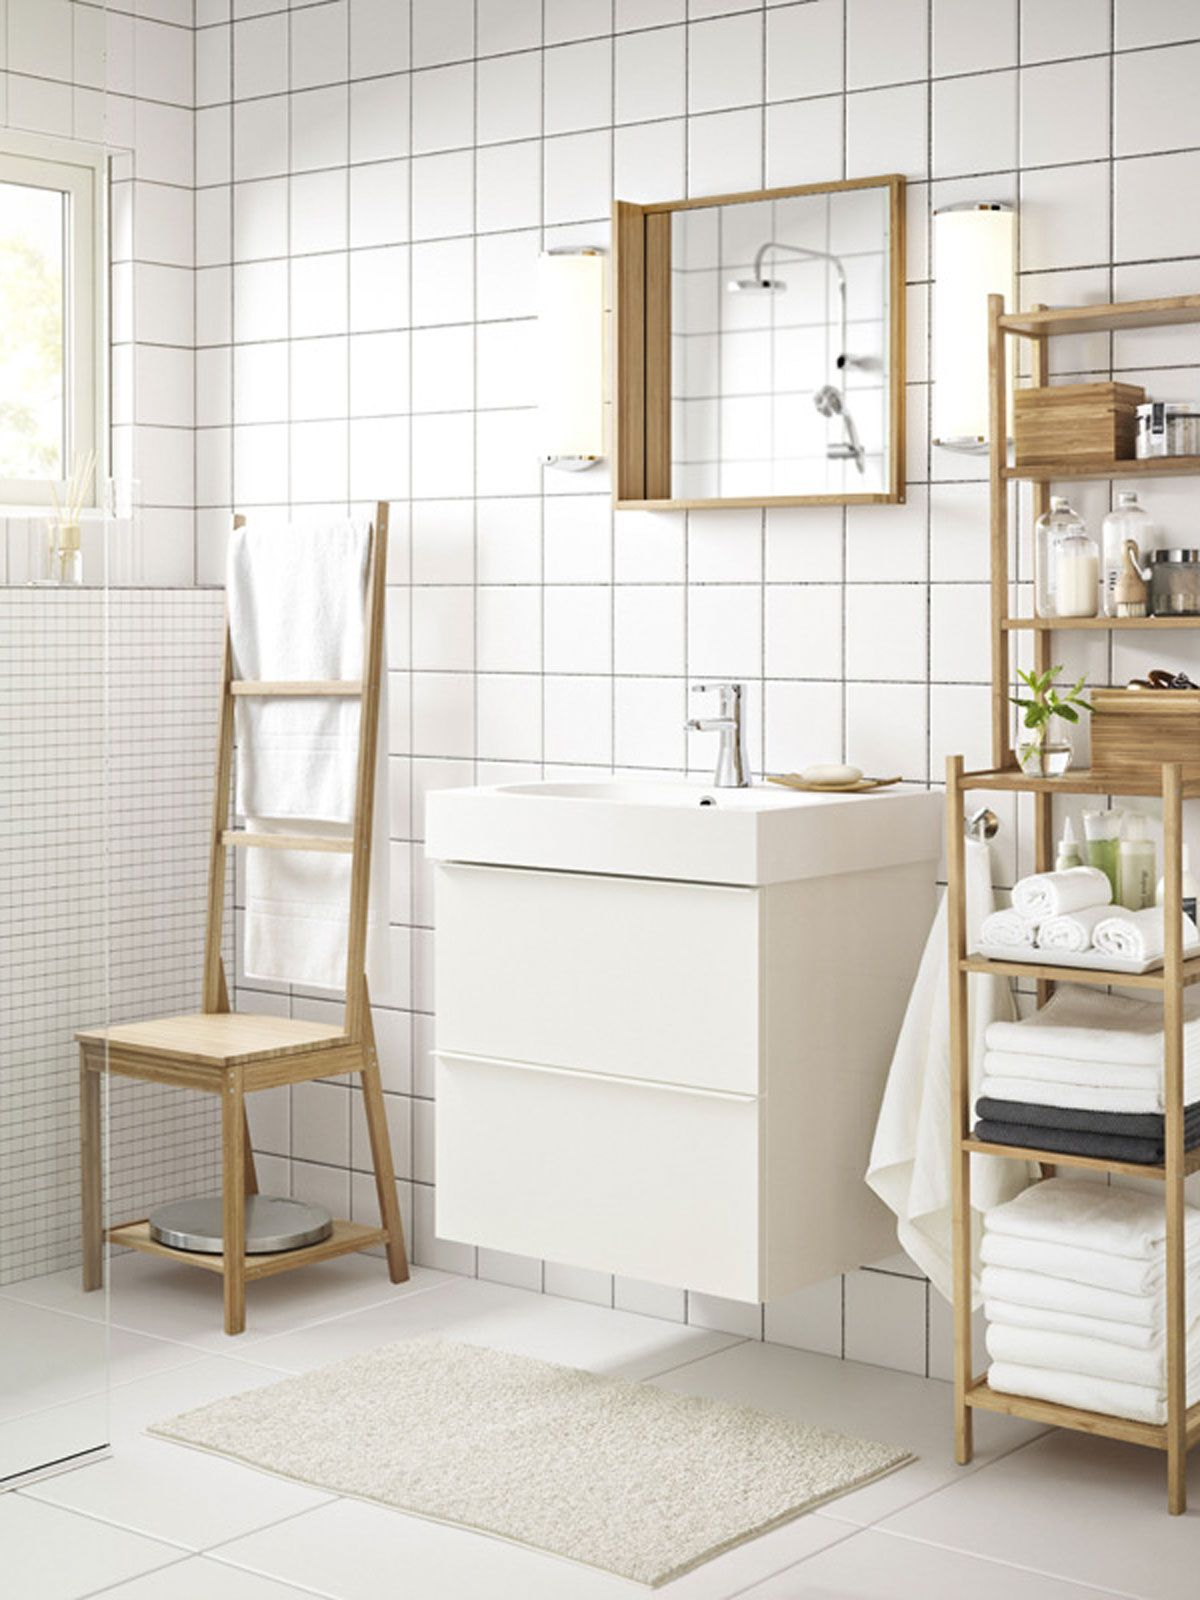 Verruckte Badezimmer Ideen Badezimmer Deko Bambus In 2020 Bathroom Bathroom Styling Bathroom Inspiration